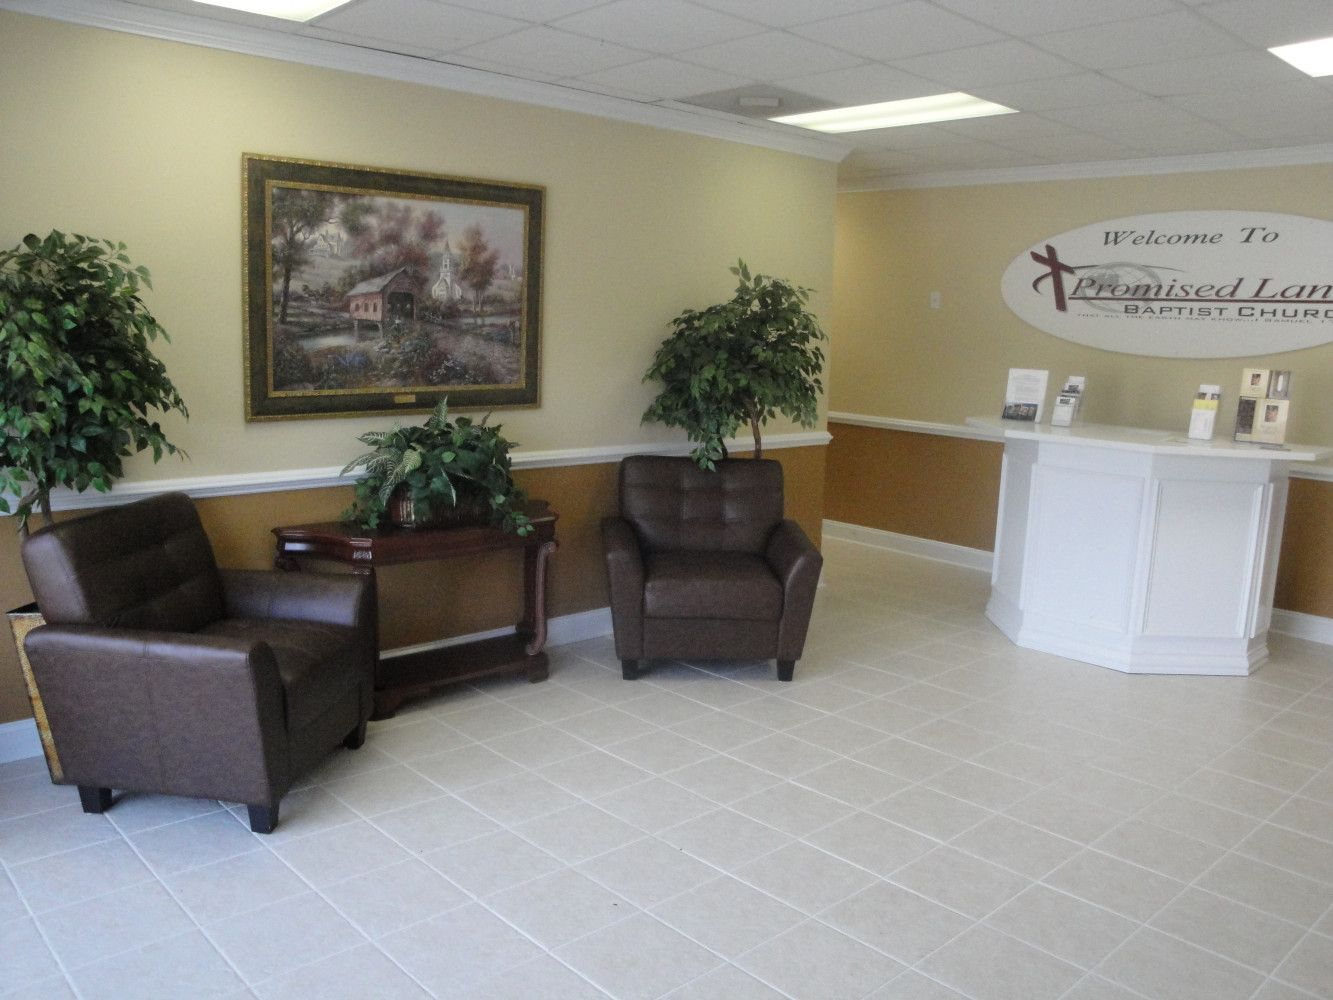 Nice Clean Welcome Center And Foyer!!! Good For A Small